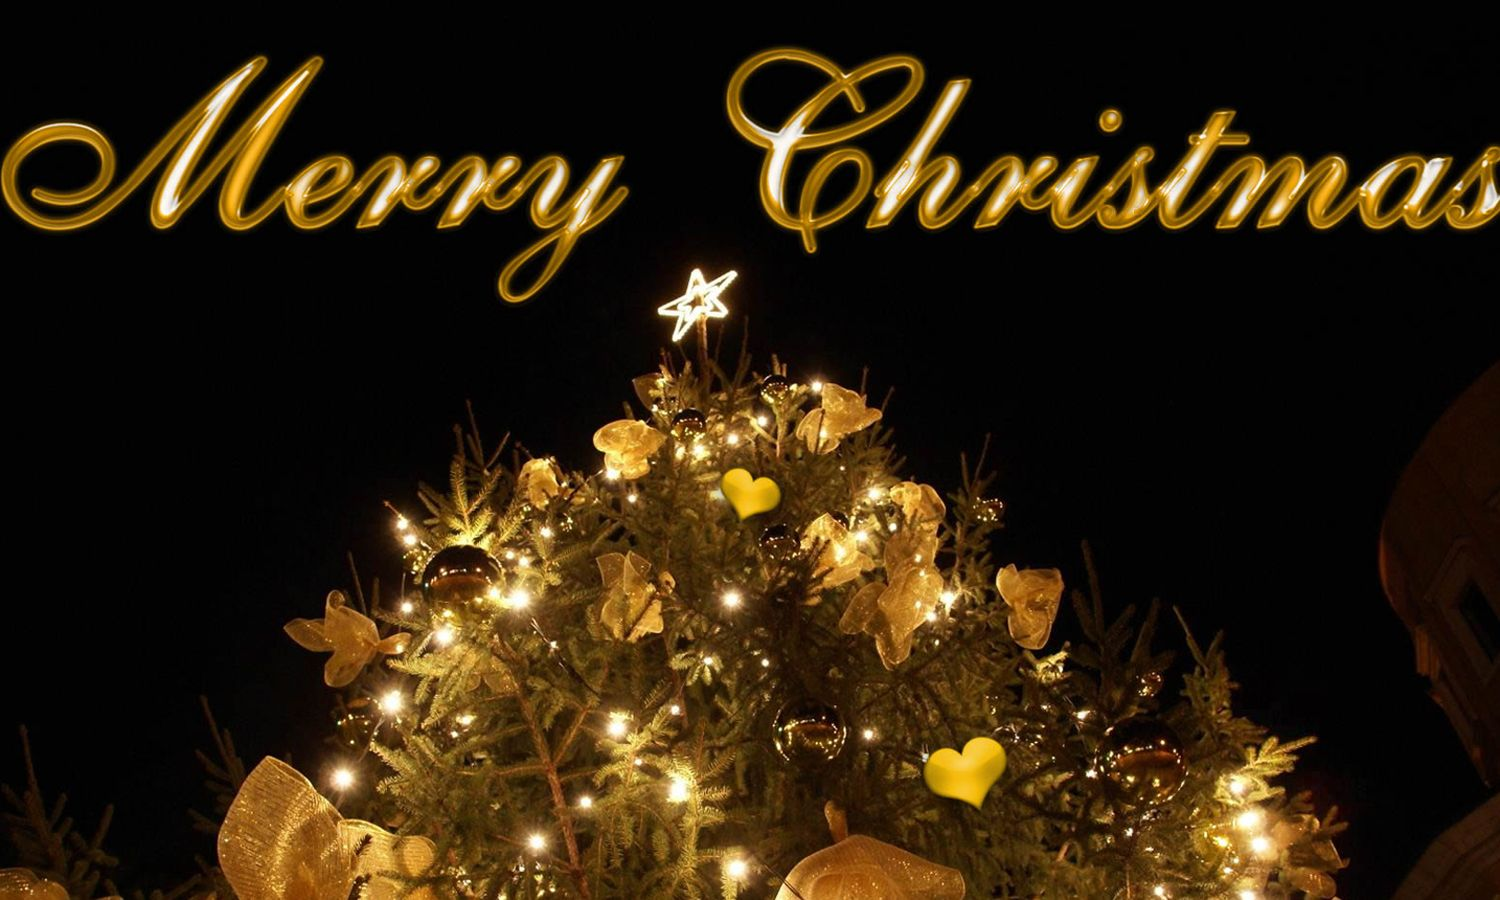 Muslims And Merry Christmas Wishes Merry Christmas Pictures Merry Christmas Images Merry Christmas Greetings